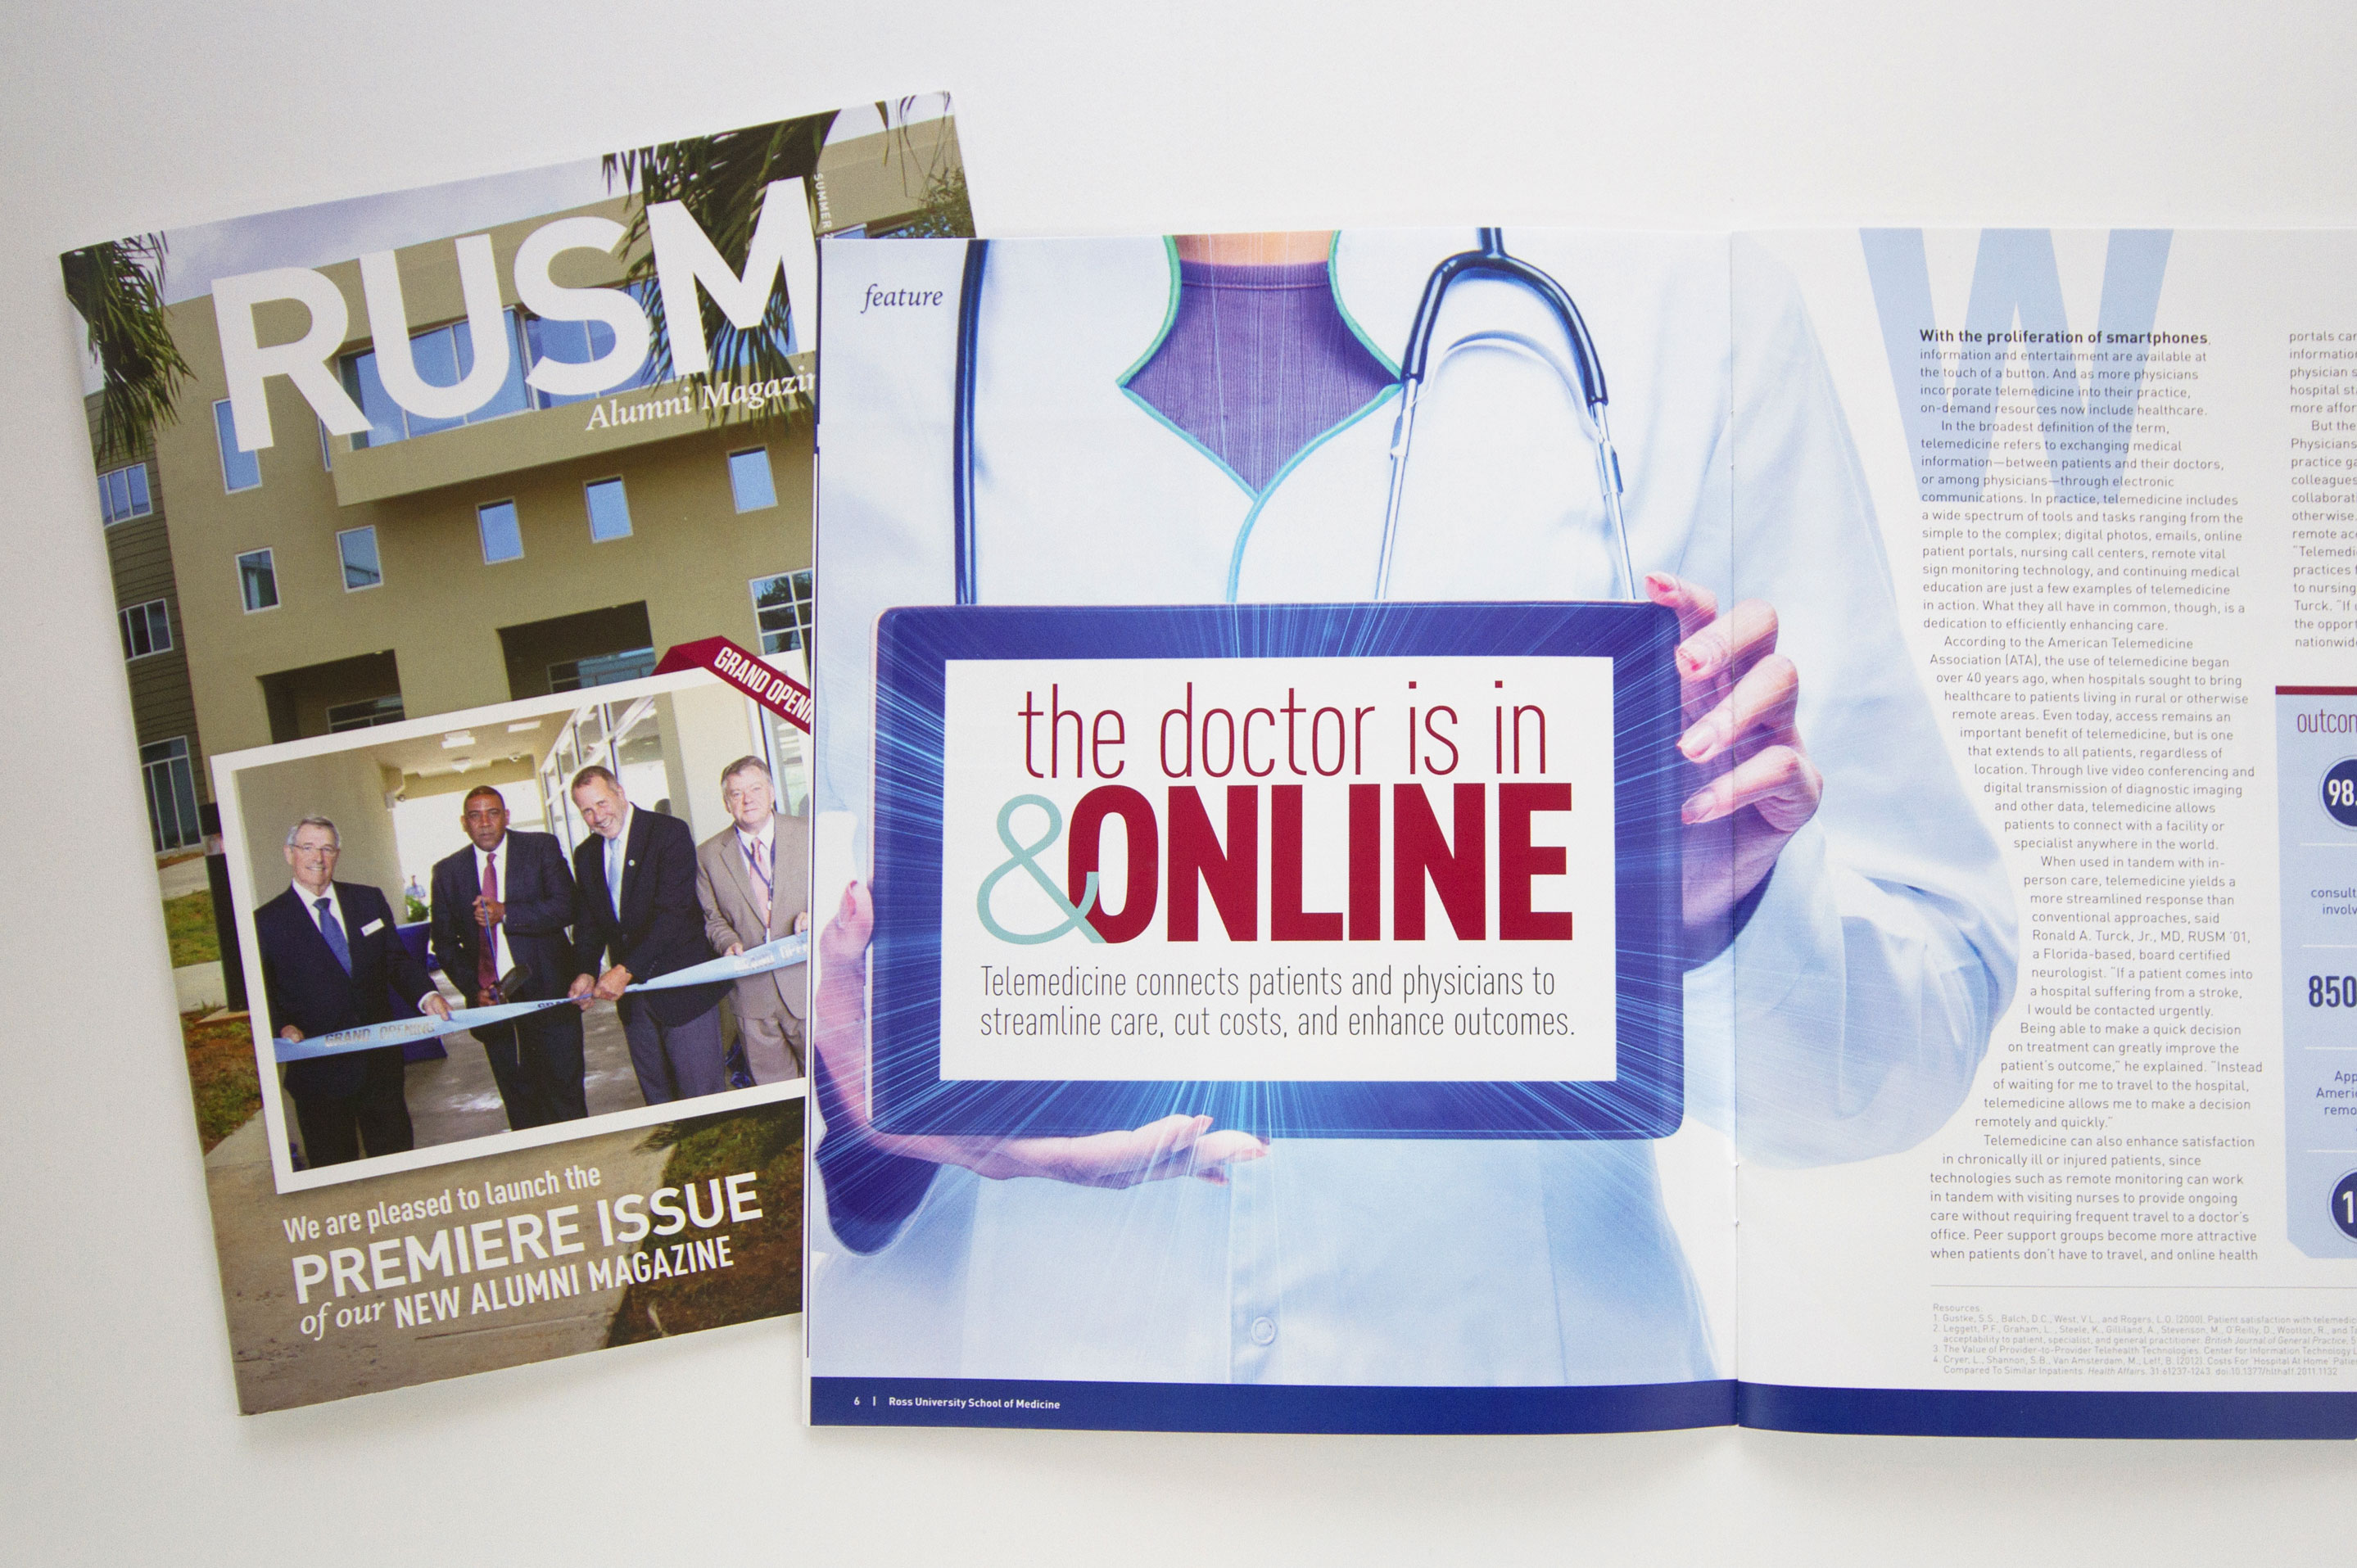 Ross University School of Medicine alumni magazine